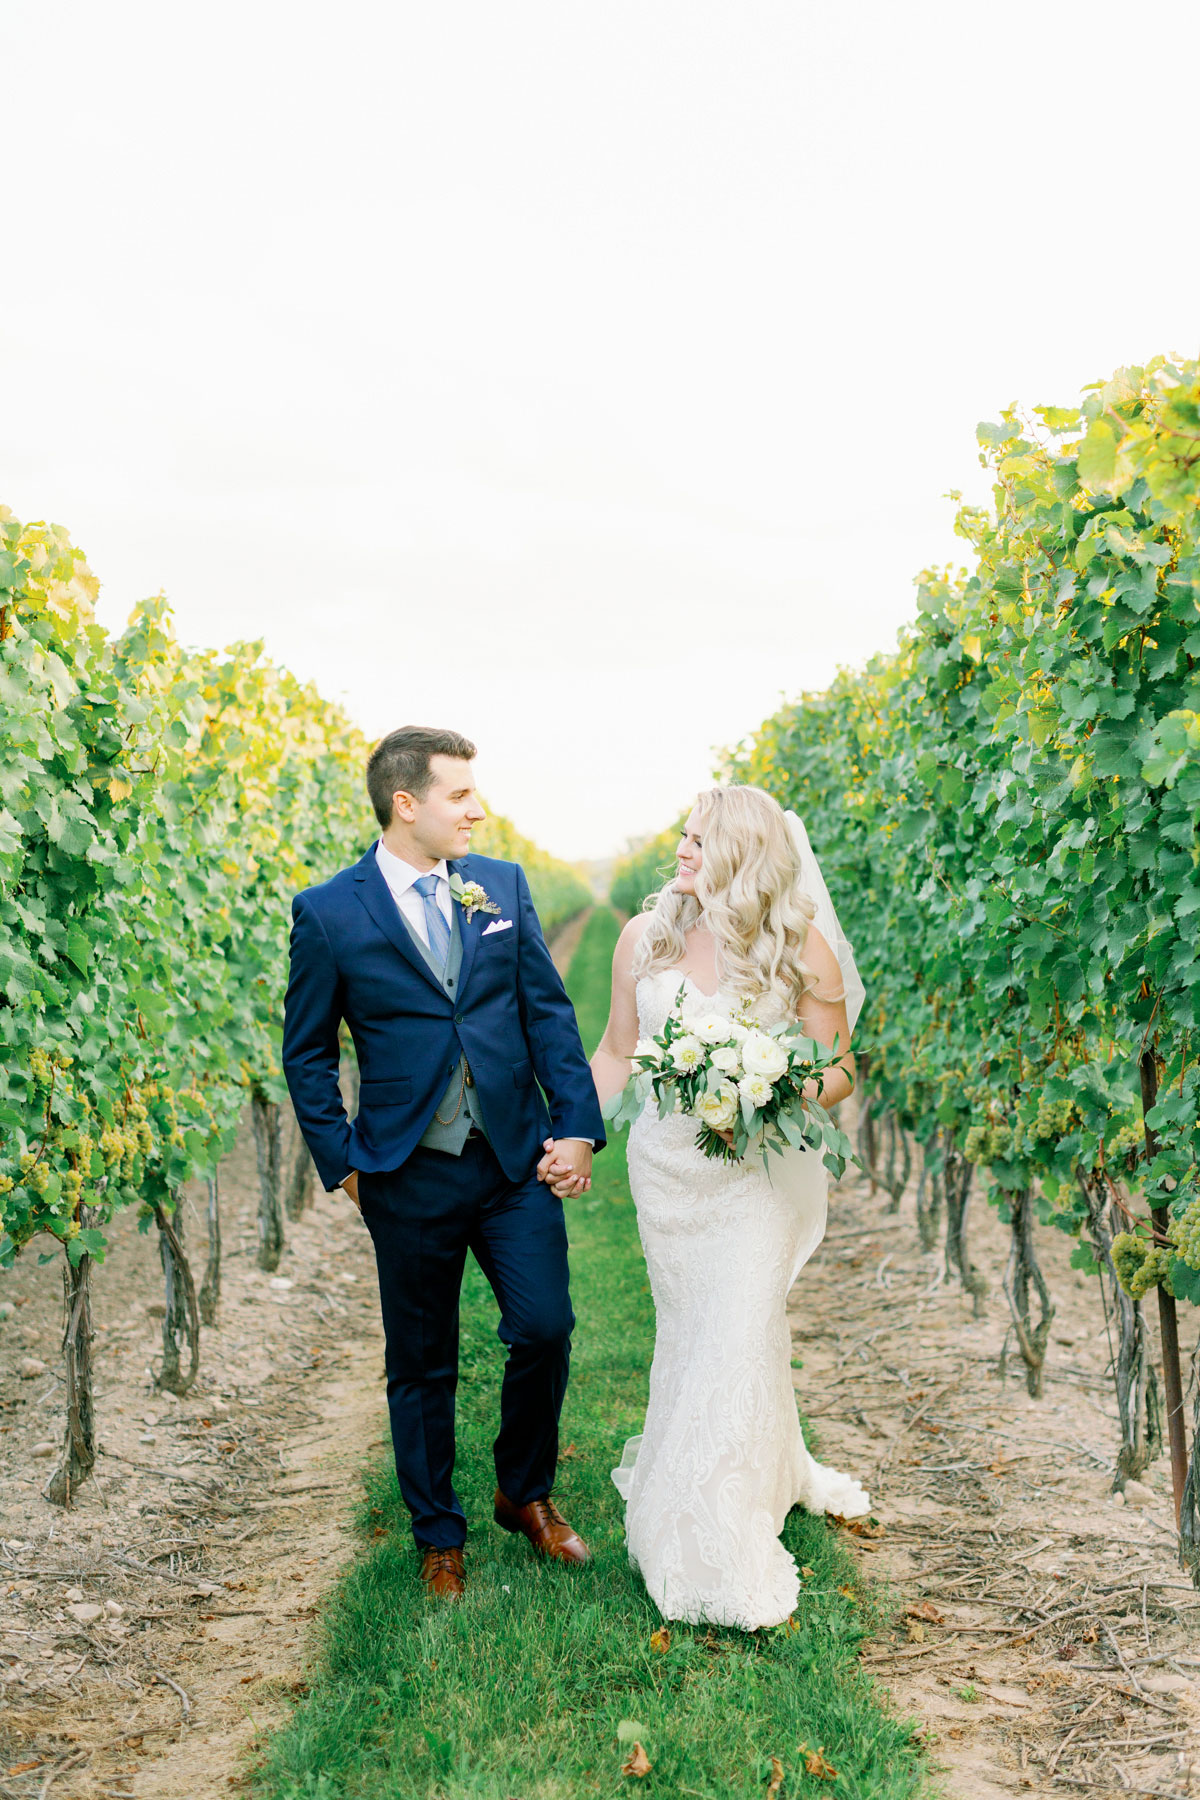 vineyard-bride-kayla-yestal-outdoor-summer-wedding-honsberger-estate-winery-niagara-toronto-vendor-0045.jpg